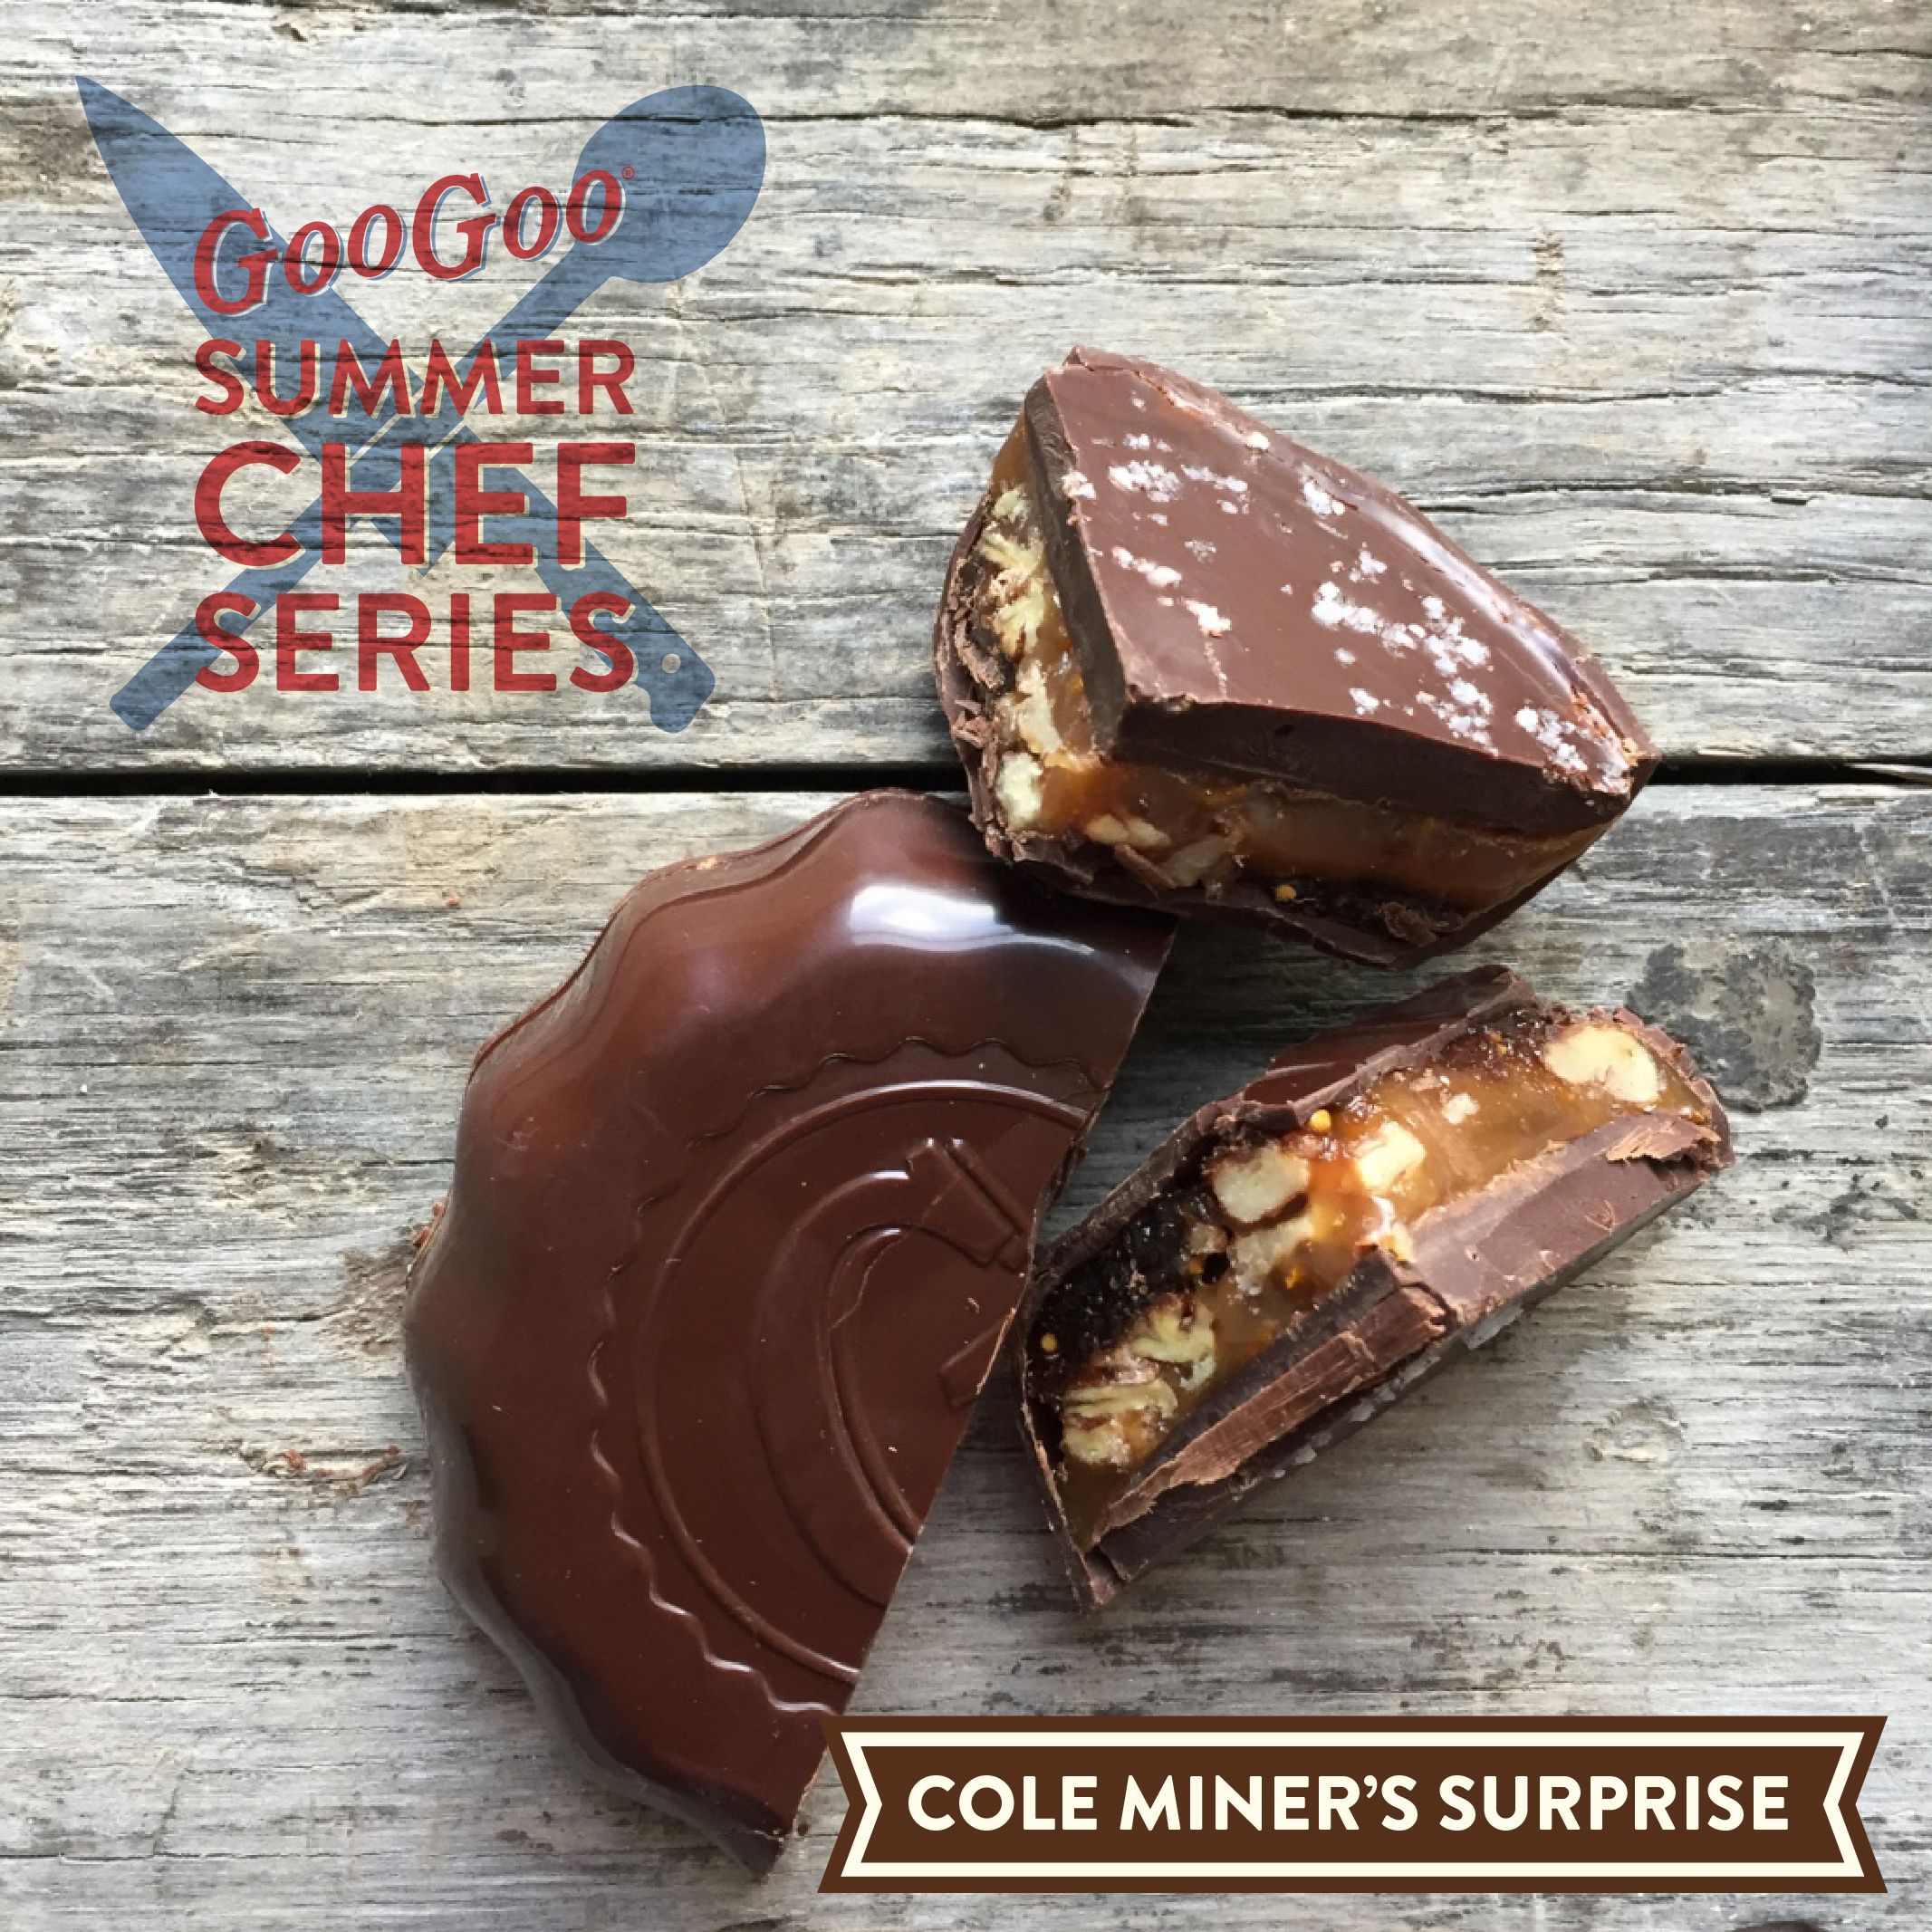 Summer Chef Series: Cole Miner's Surprise Image